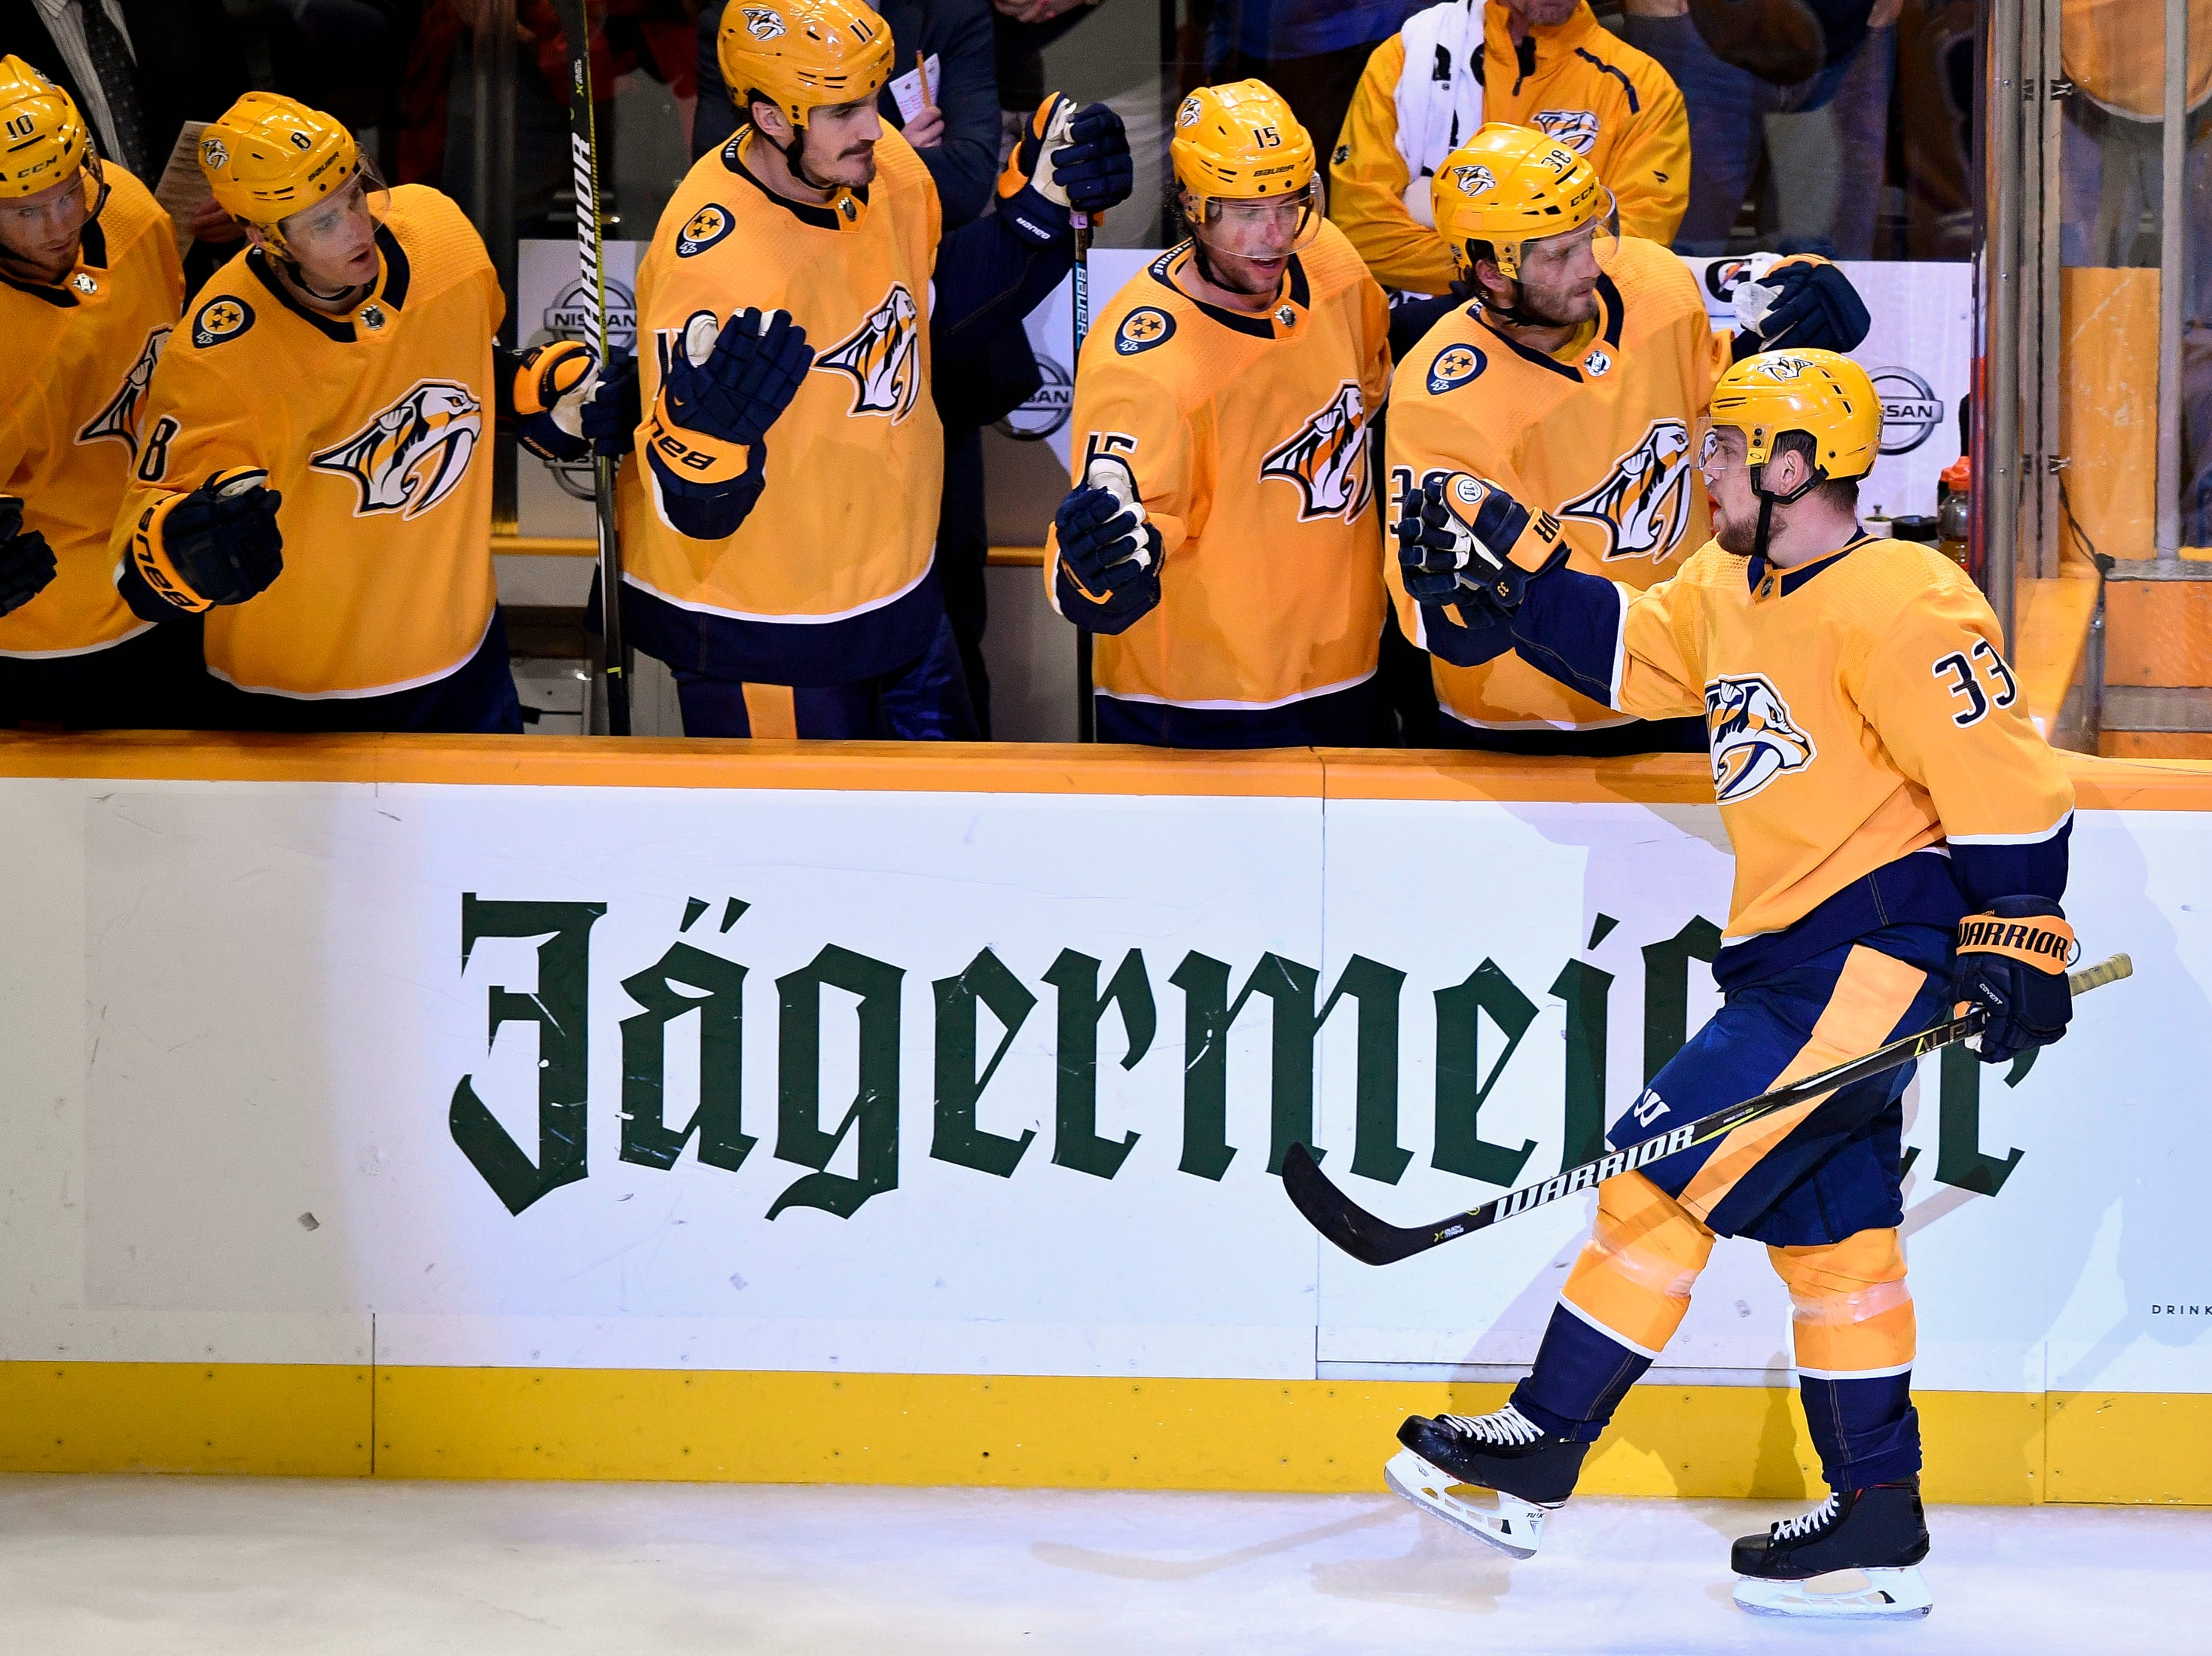 Nashville Predators right wing Viktor Arvidsson (33) reacts to scoring against the Dallas Stars during the third period at Bridgestone Arena in Nashville, Tenn., Thursday, Feb. 7, 2019.